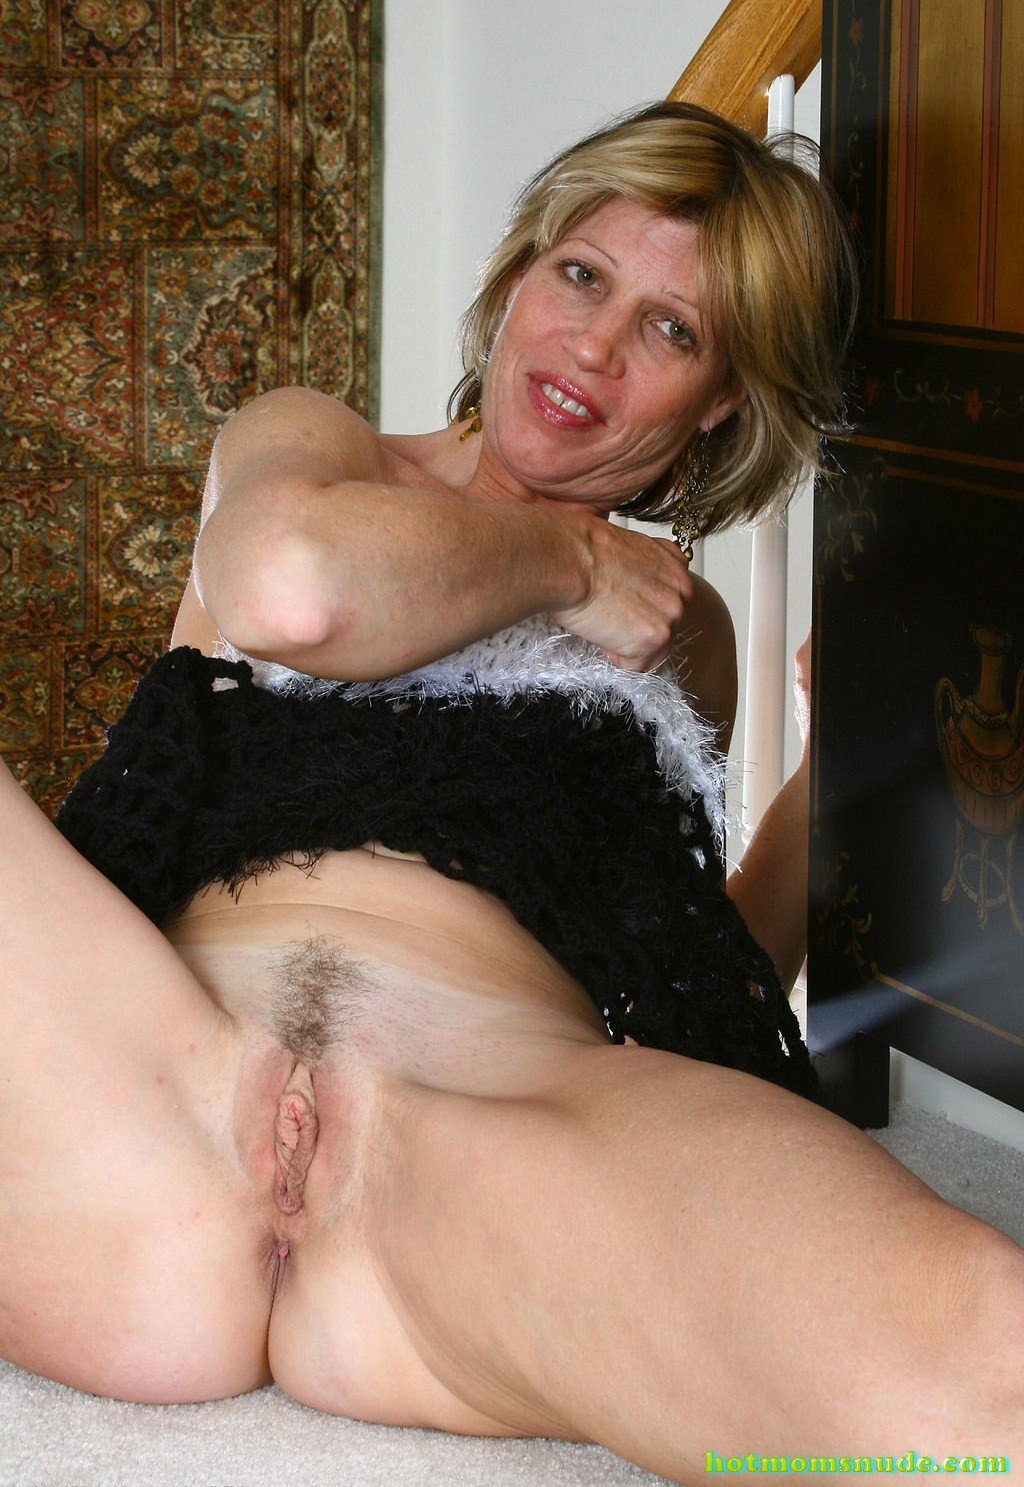 Milf Rosetta Nude Pics And Biography - Hot Moms Nude-3342